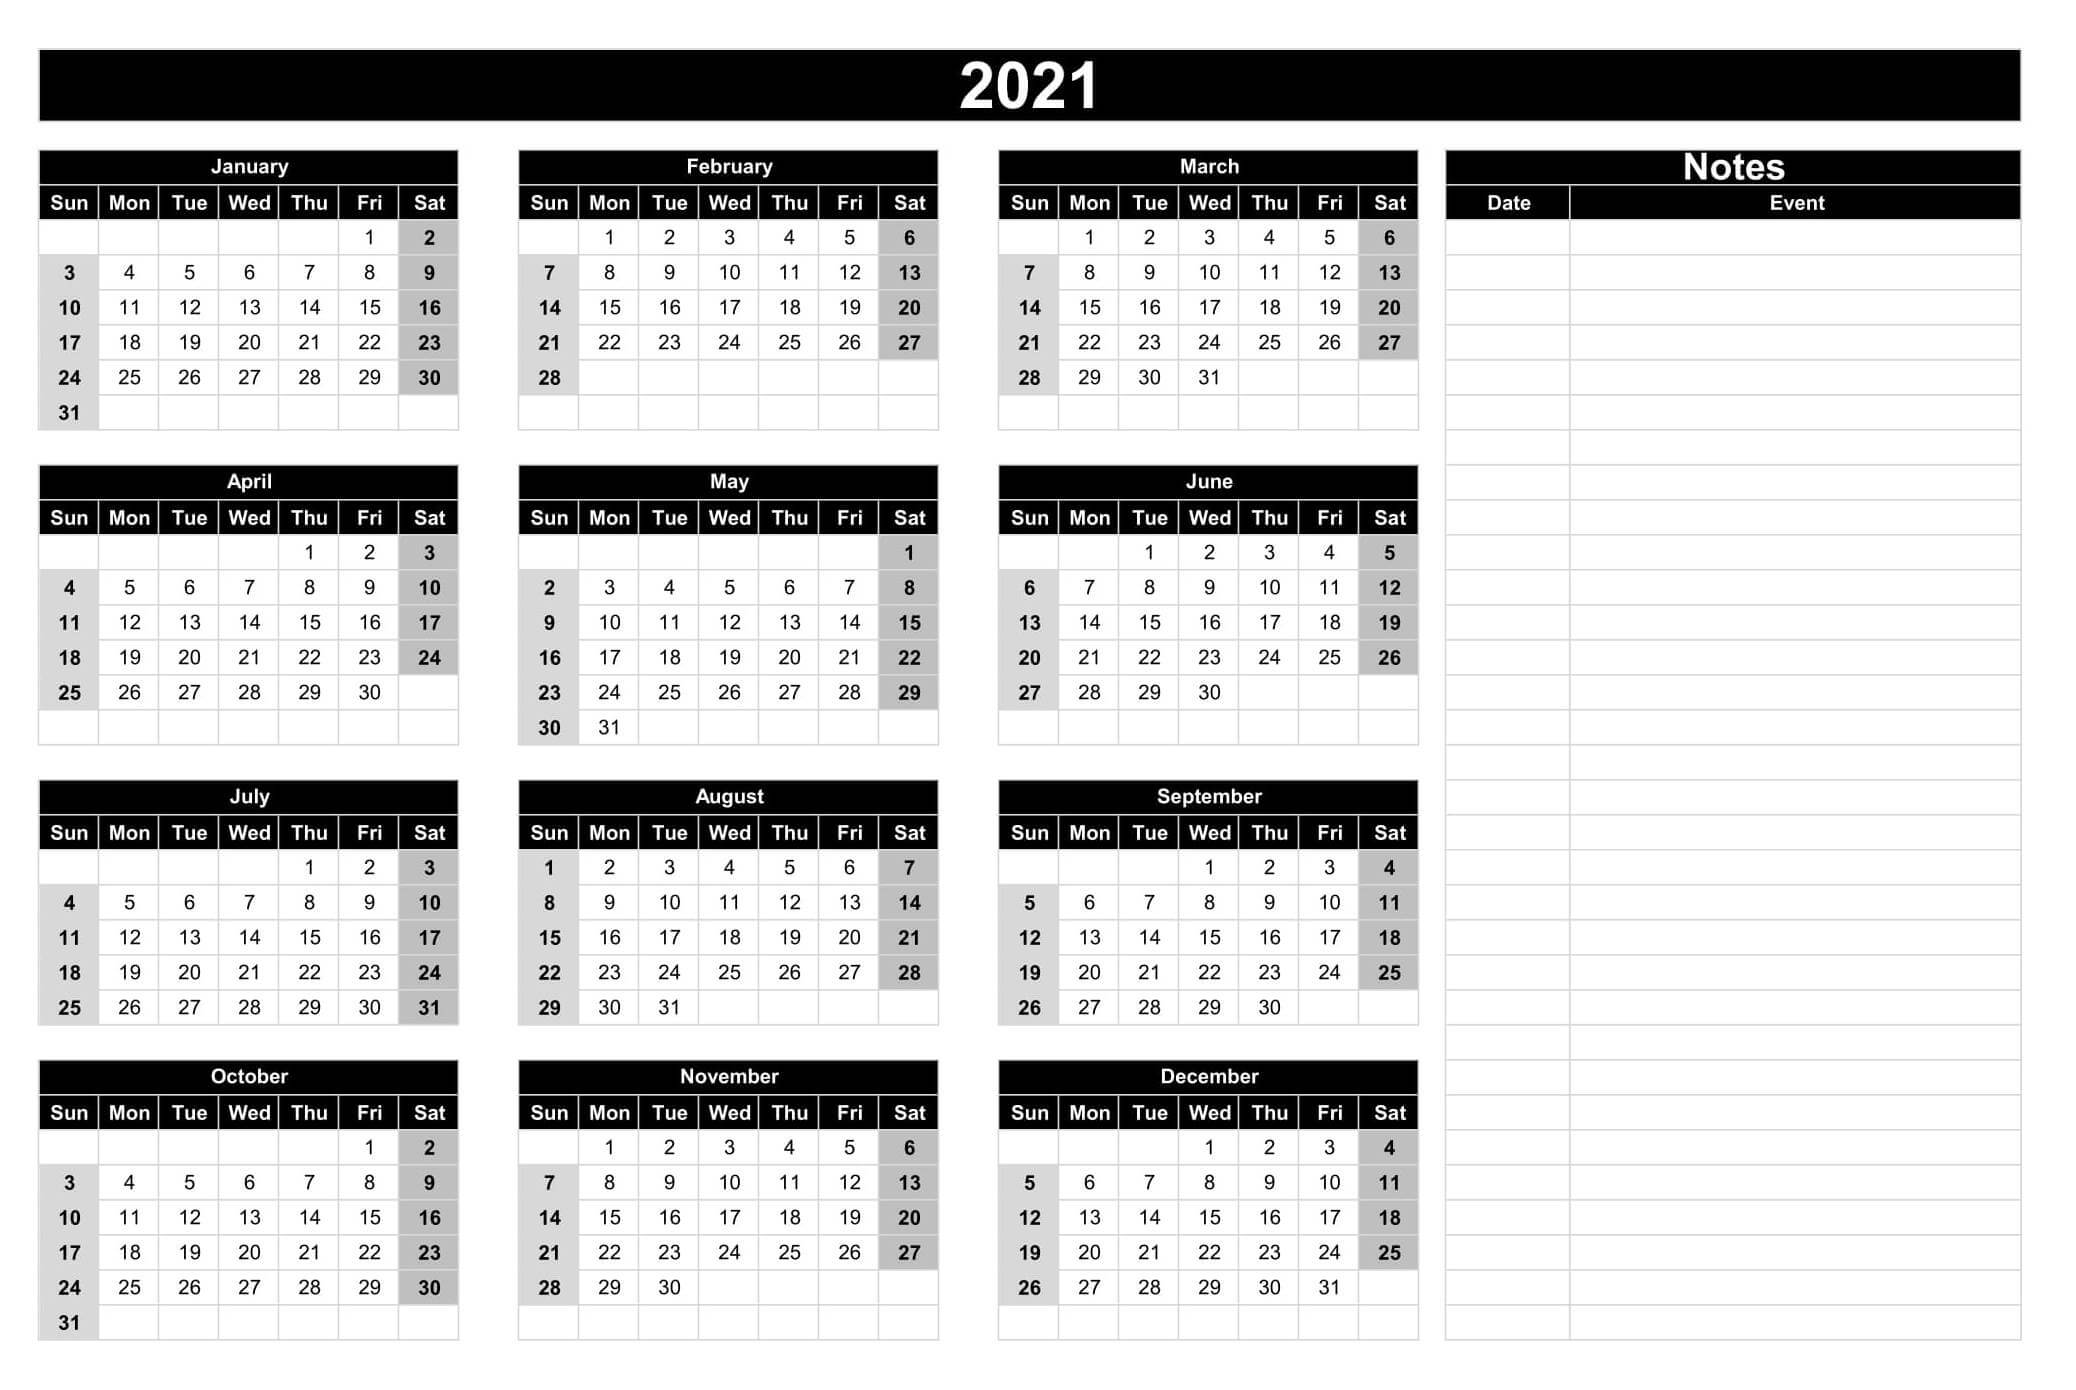 Yearly Calendar With Notes 2021